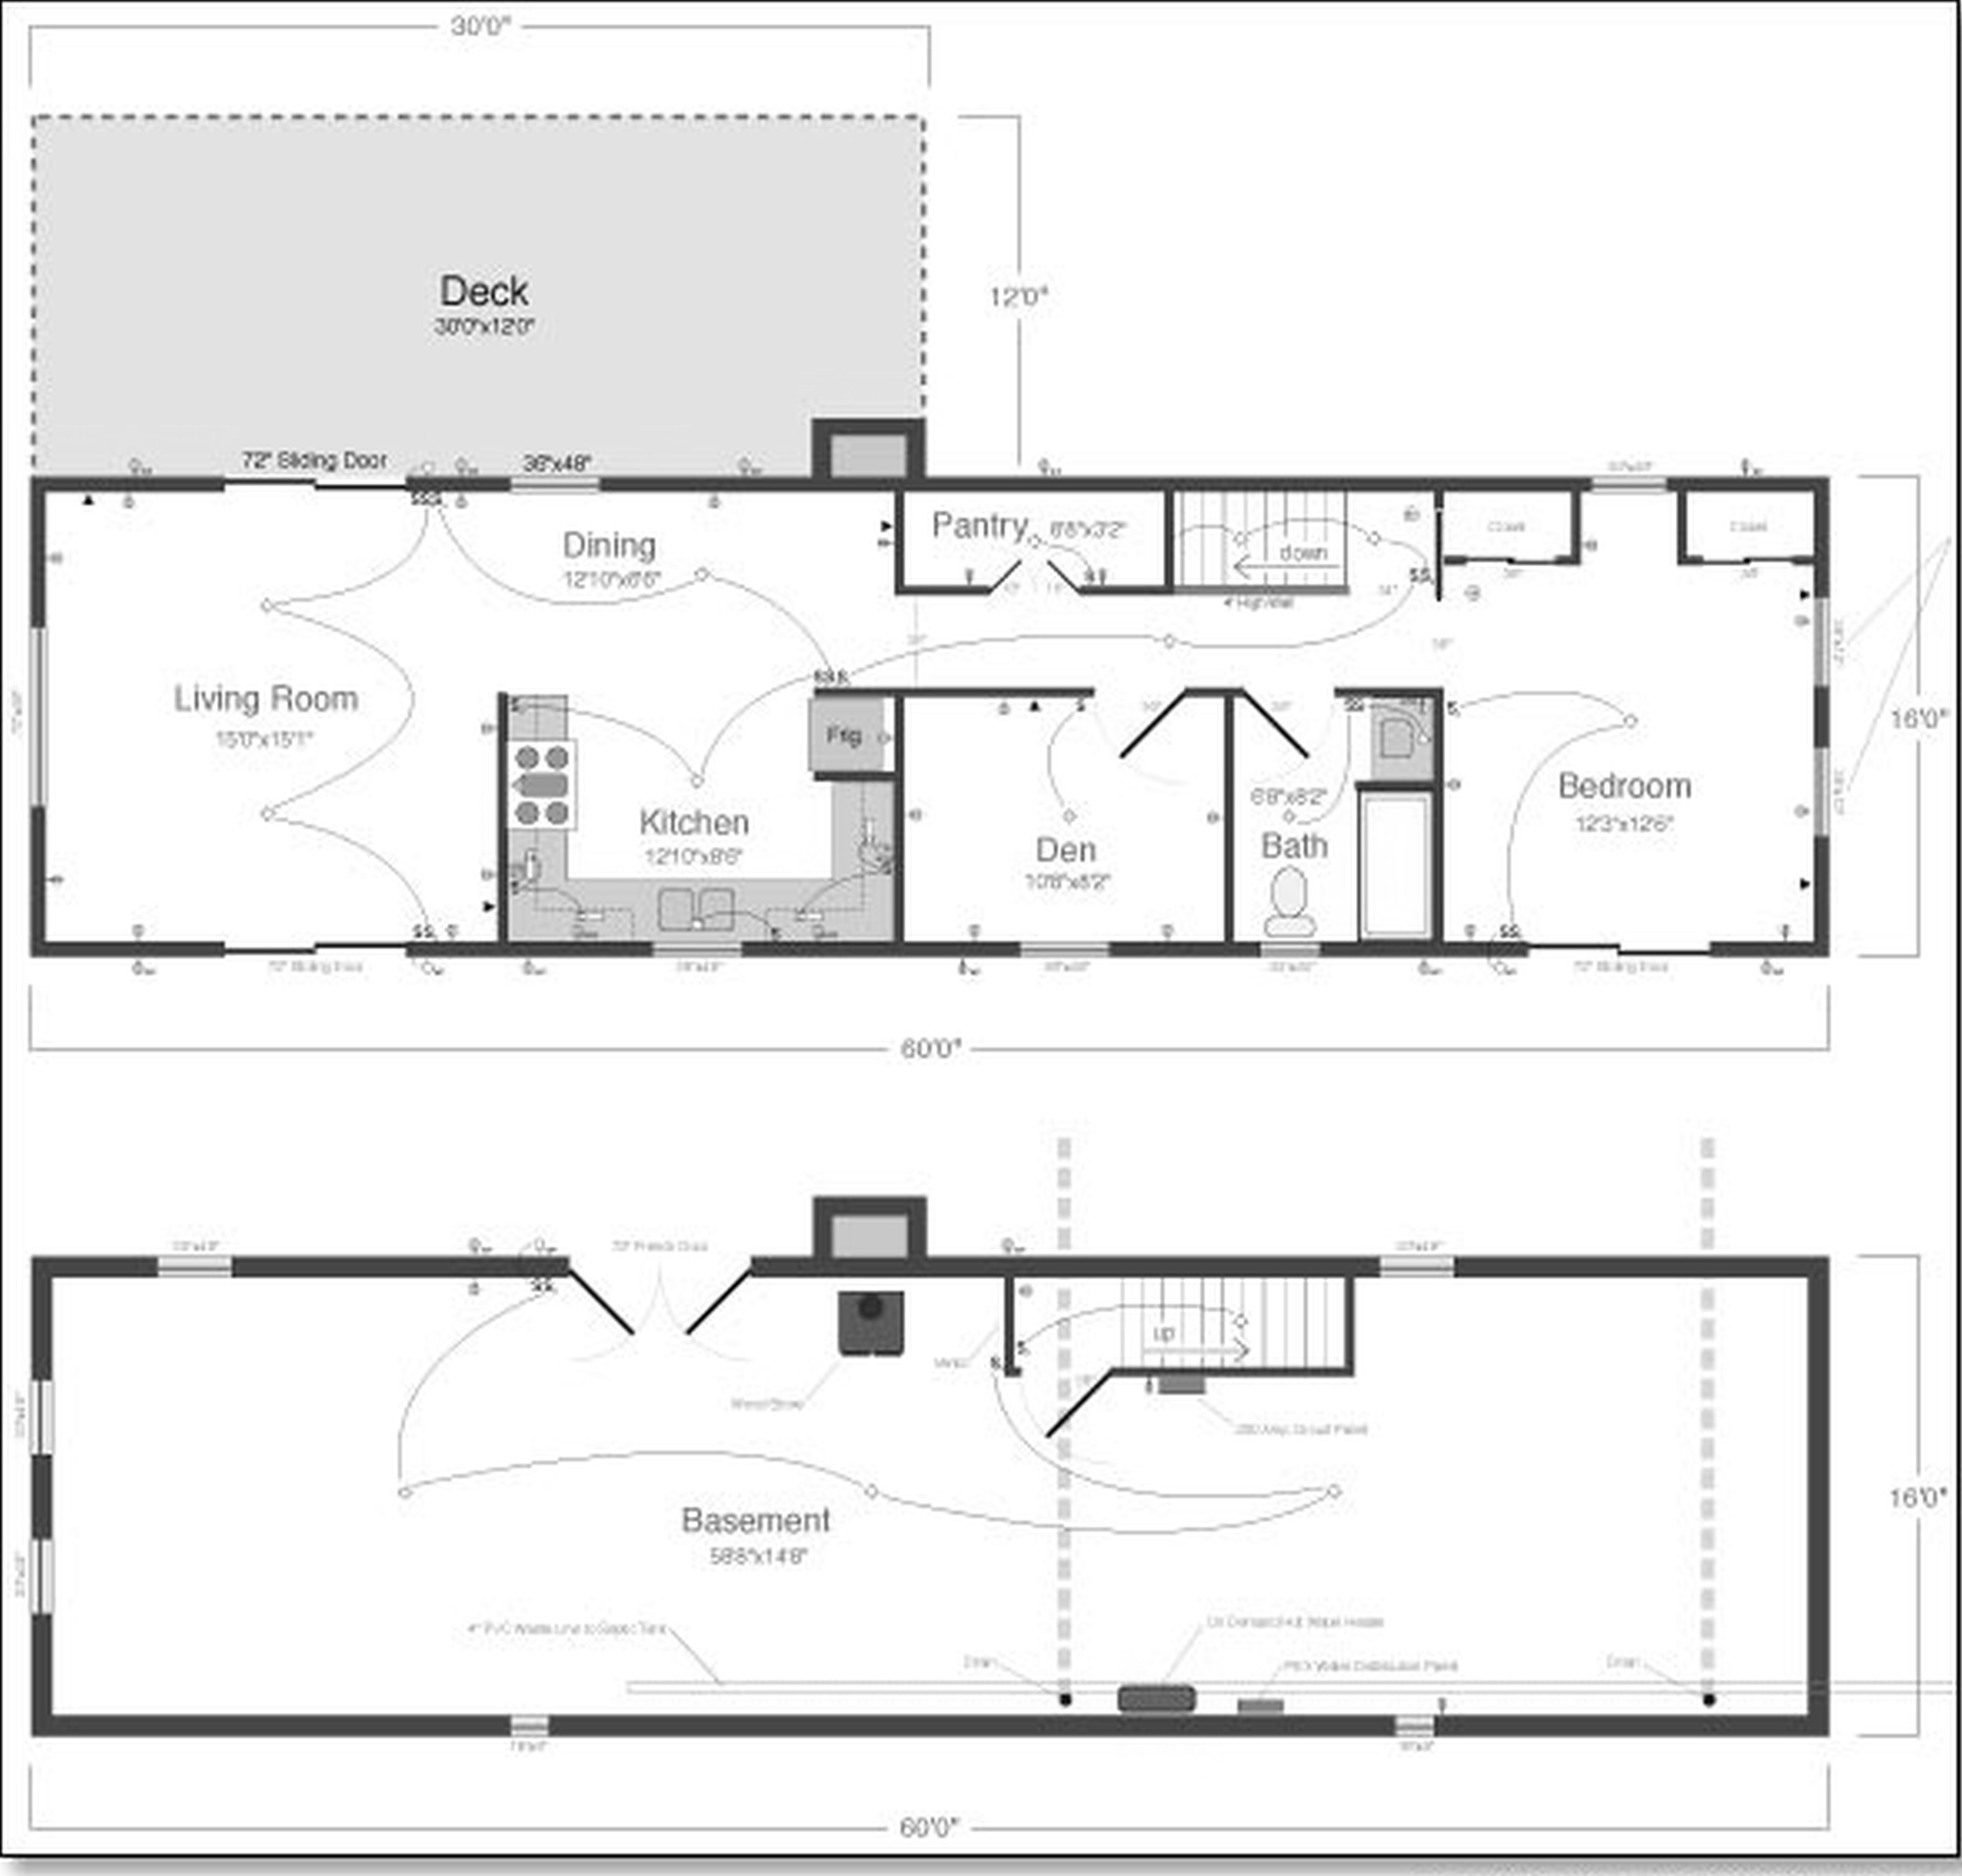 Easy On The Eye Japanese House Plans Structure Lovely Minimalist Houses Winning Thing Passive Solar House Plans Brick Ranch House Plans Ranch House Floor Plans